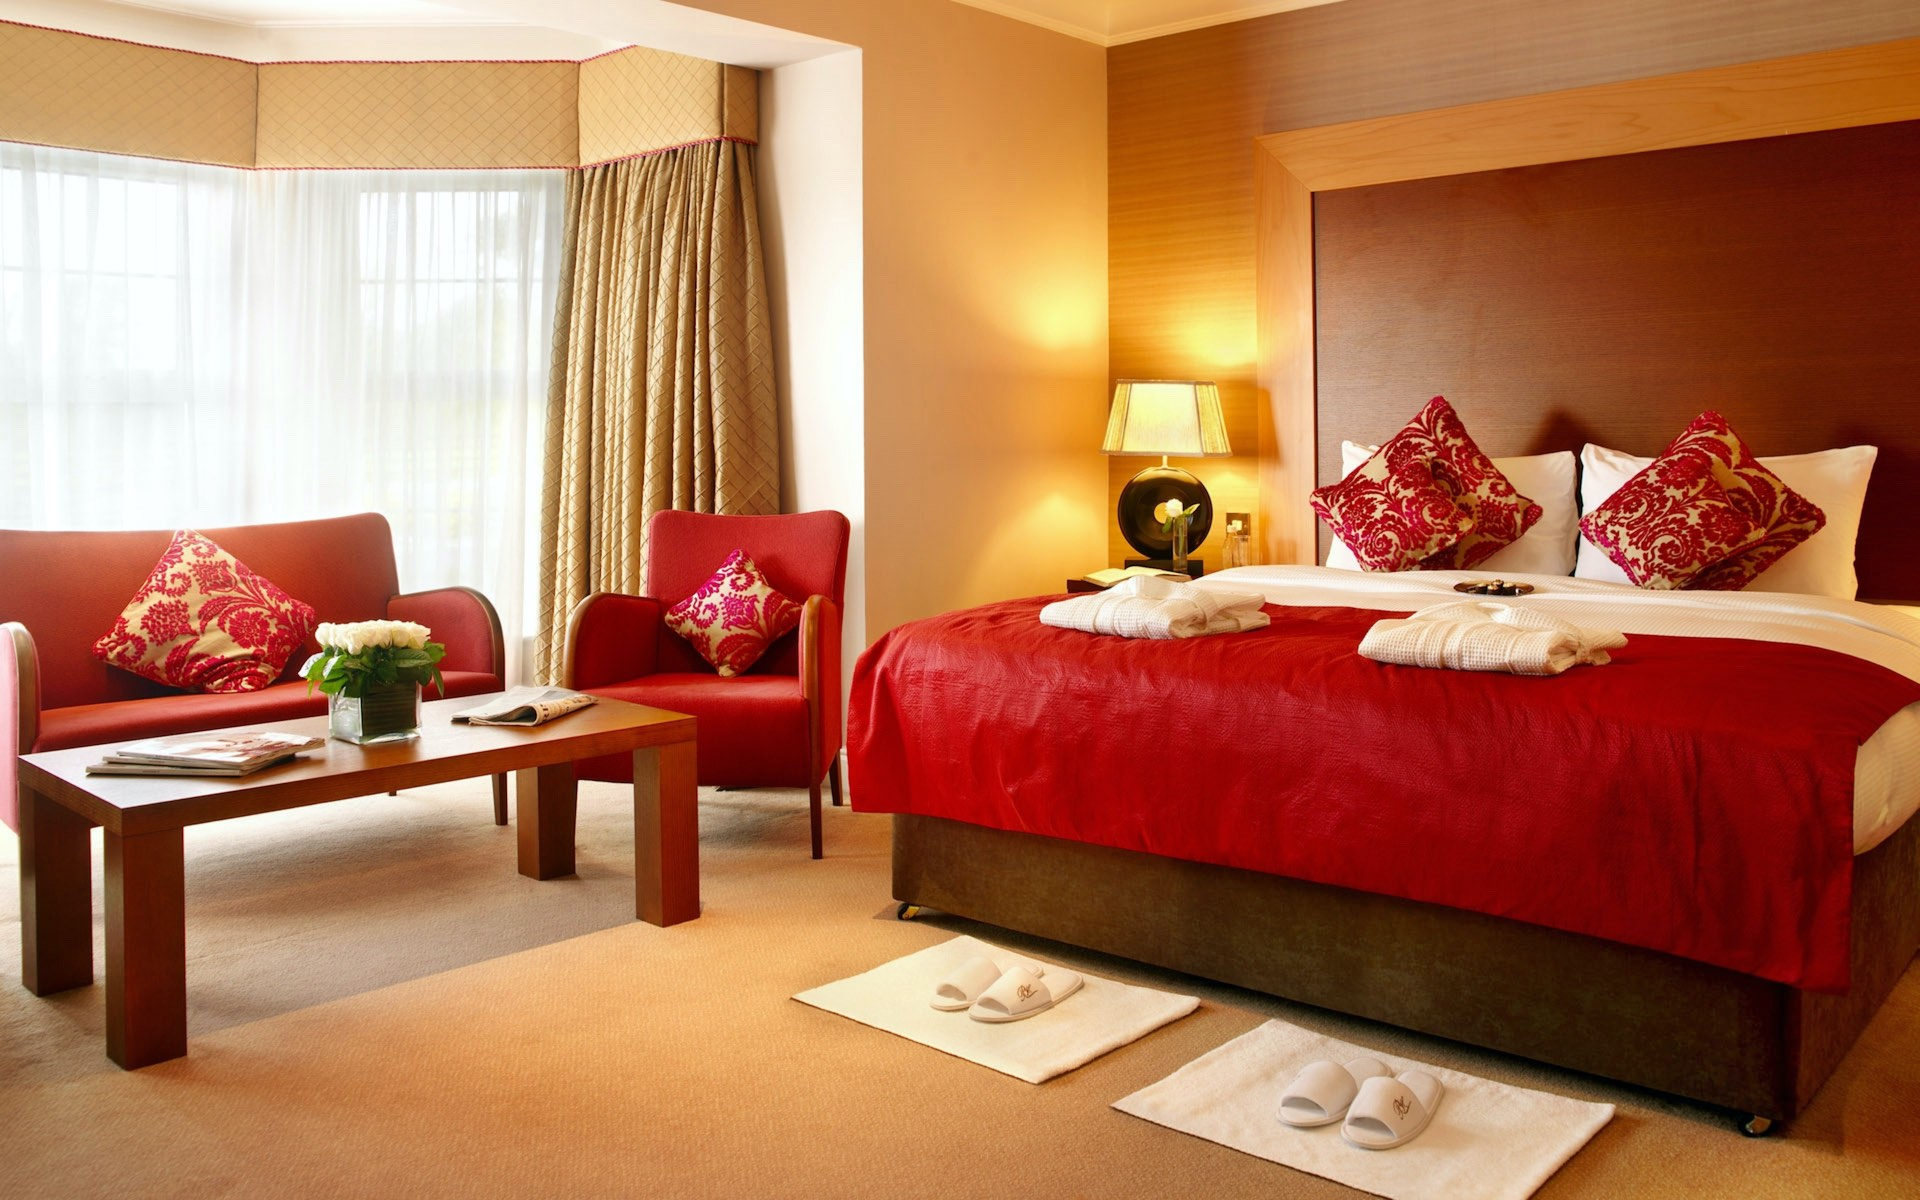 Red textiles for sofa and bed cover with red and gold cushions in a modern bedroom